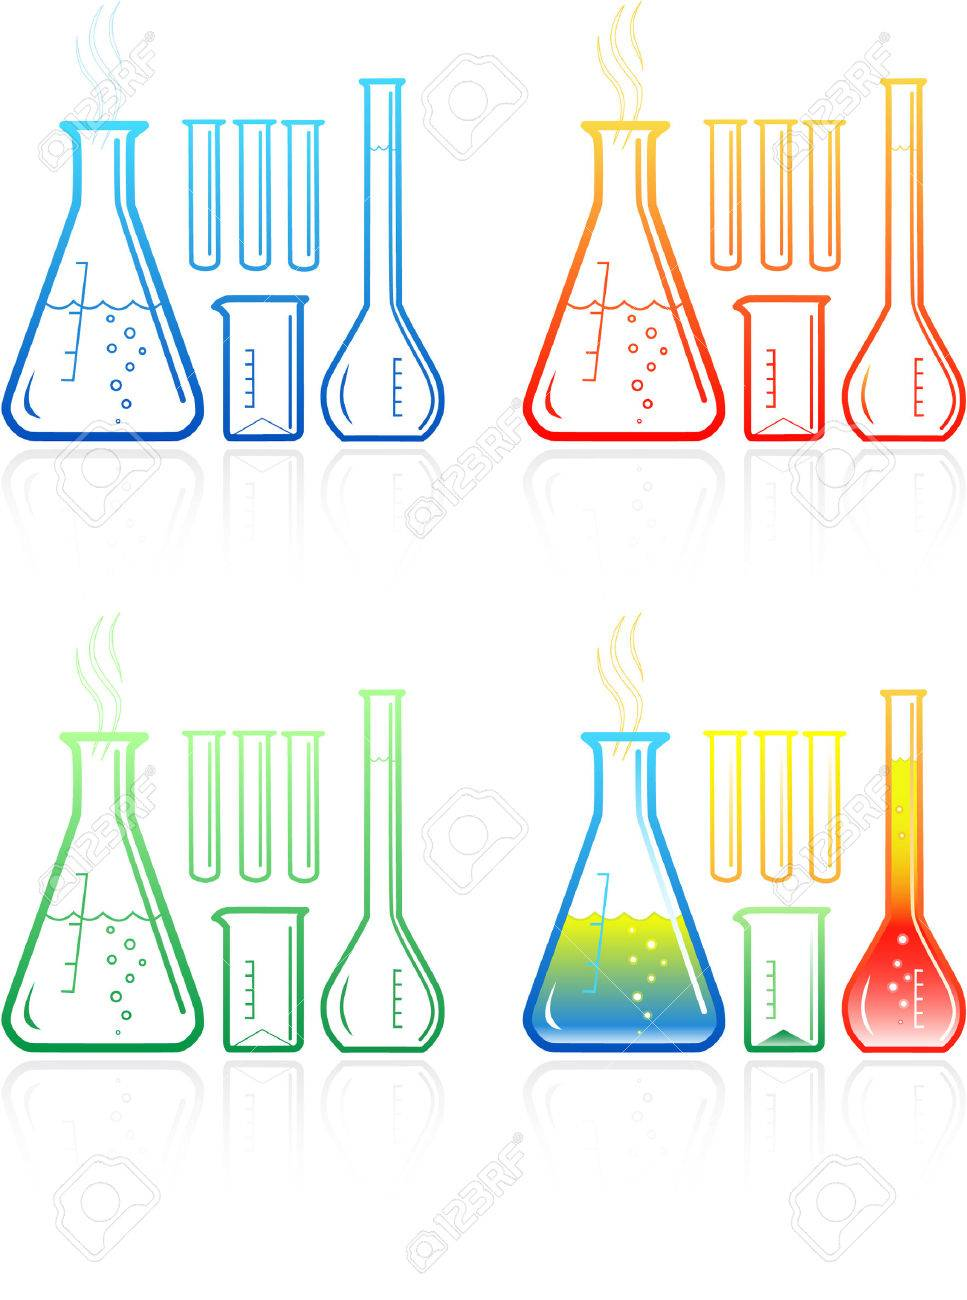 Vector chemical test tubes icons. Simply change. Stock Vector - 4351312